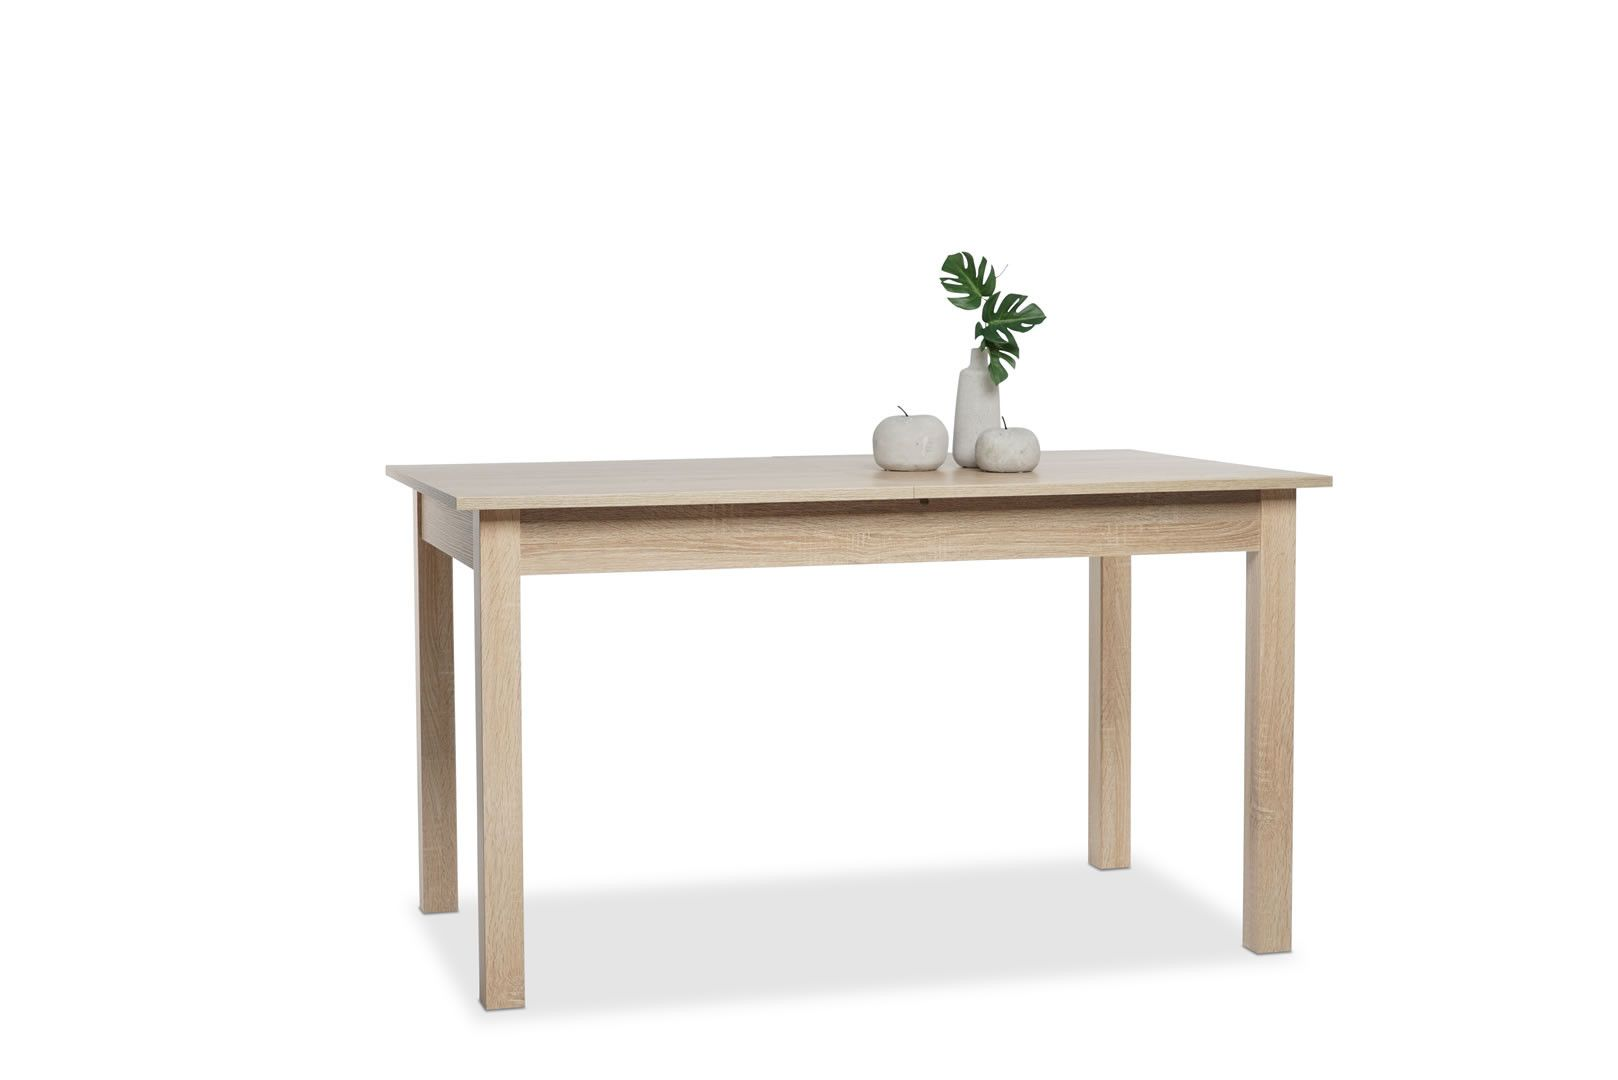 Table manger avec allonge 137 177 cm jiminy ch ne clair for Table a manger avec allonges